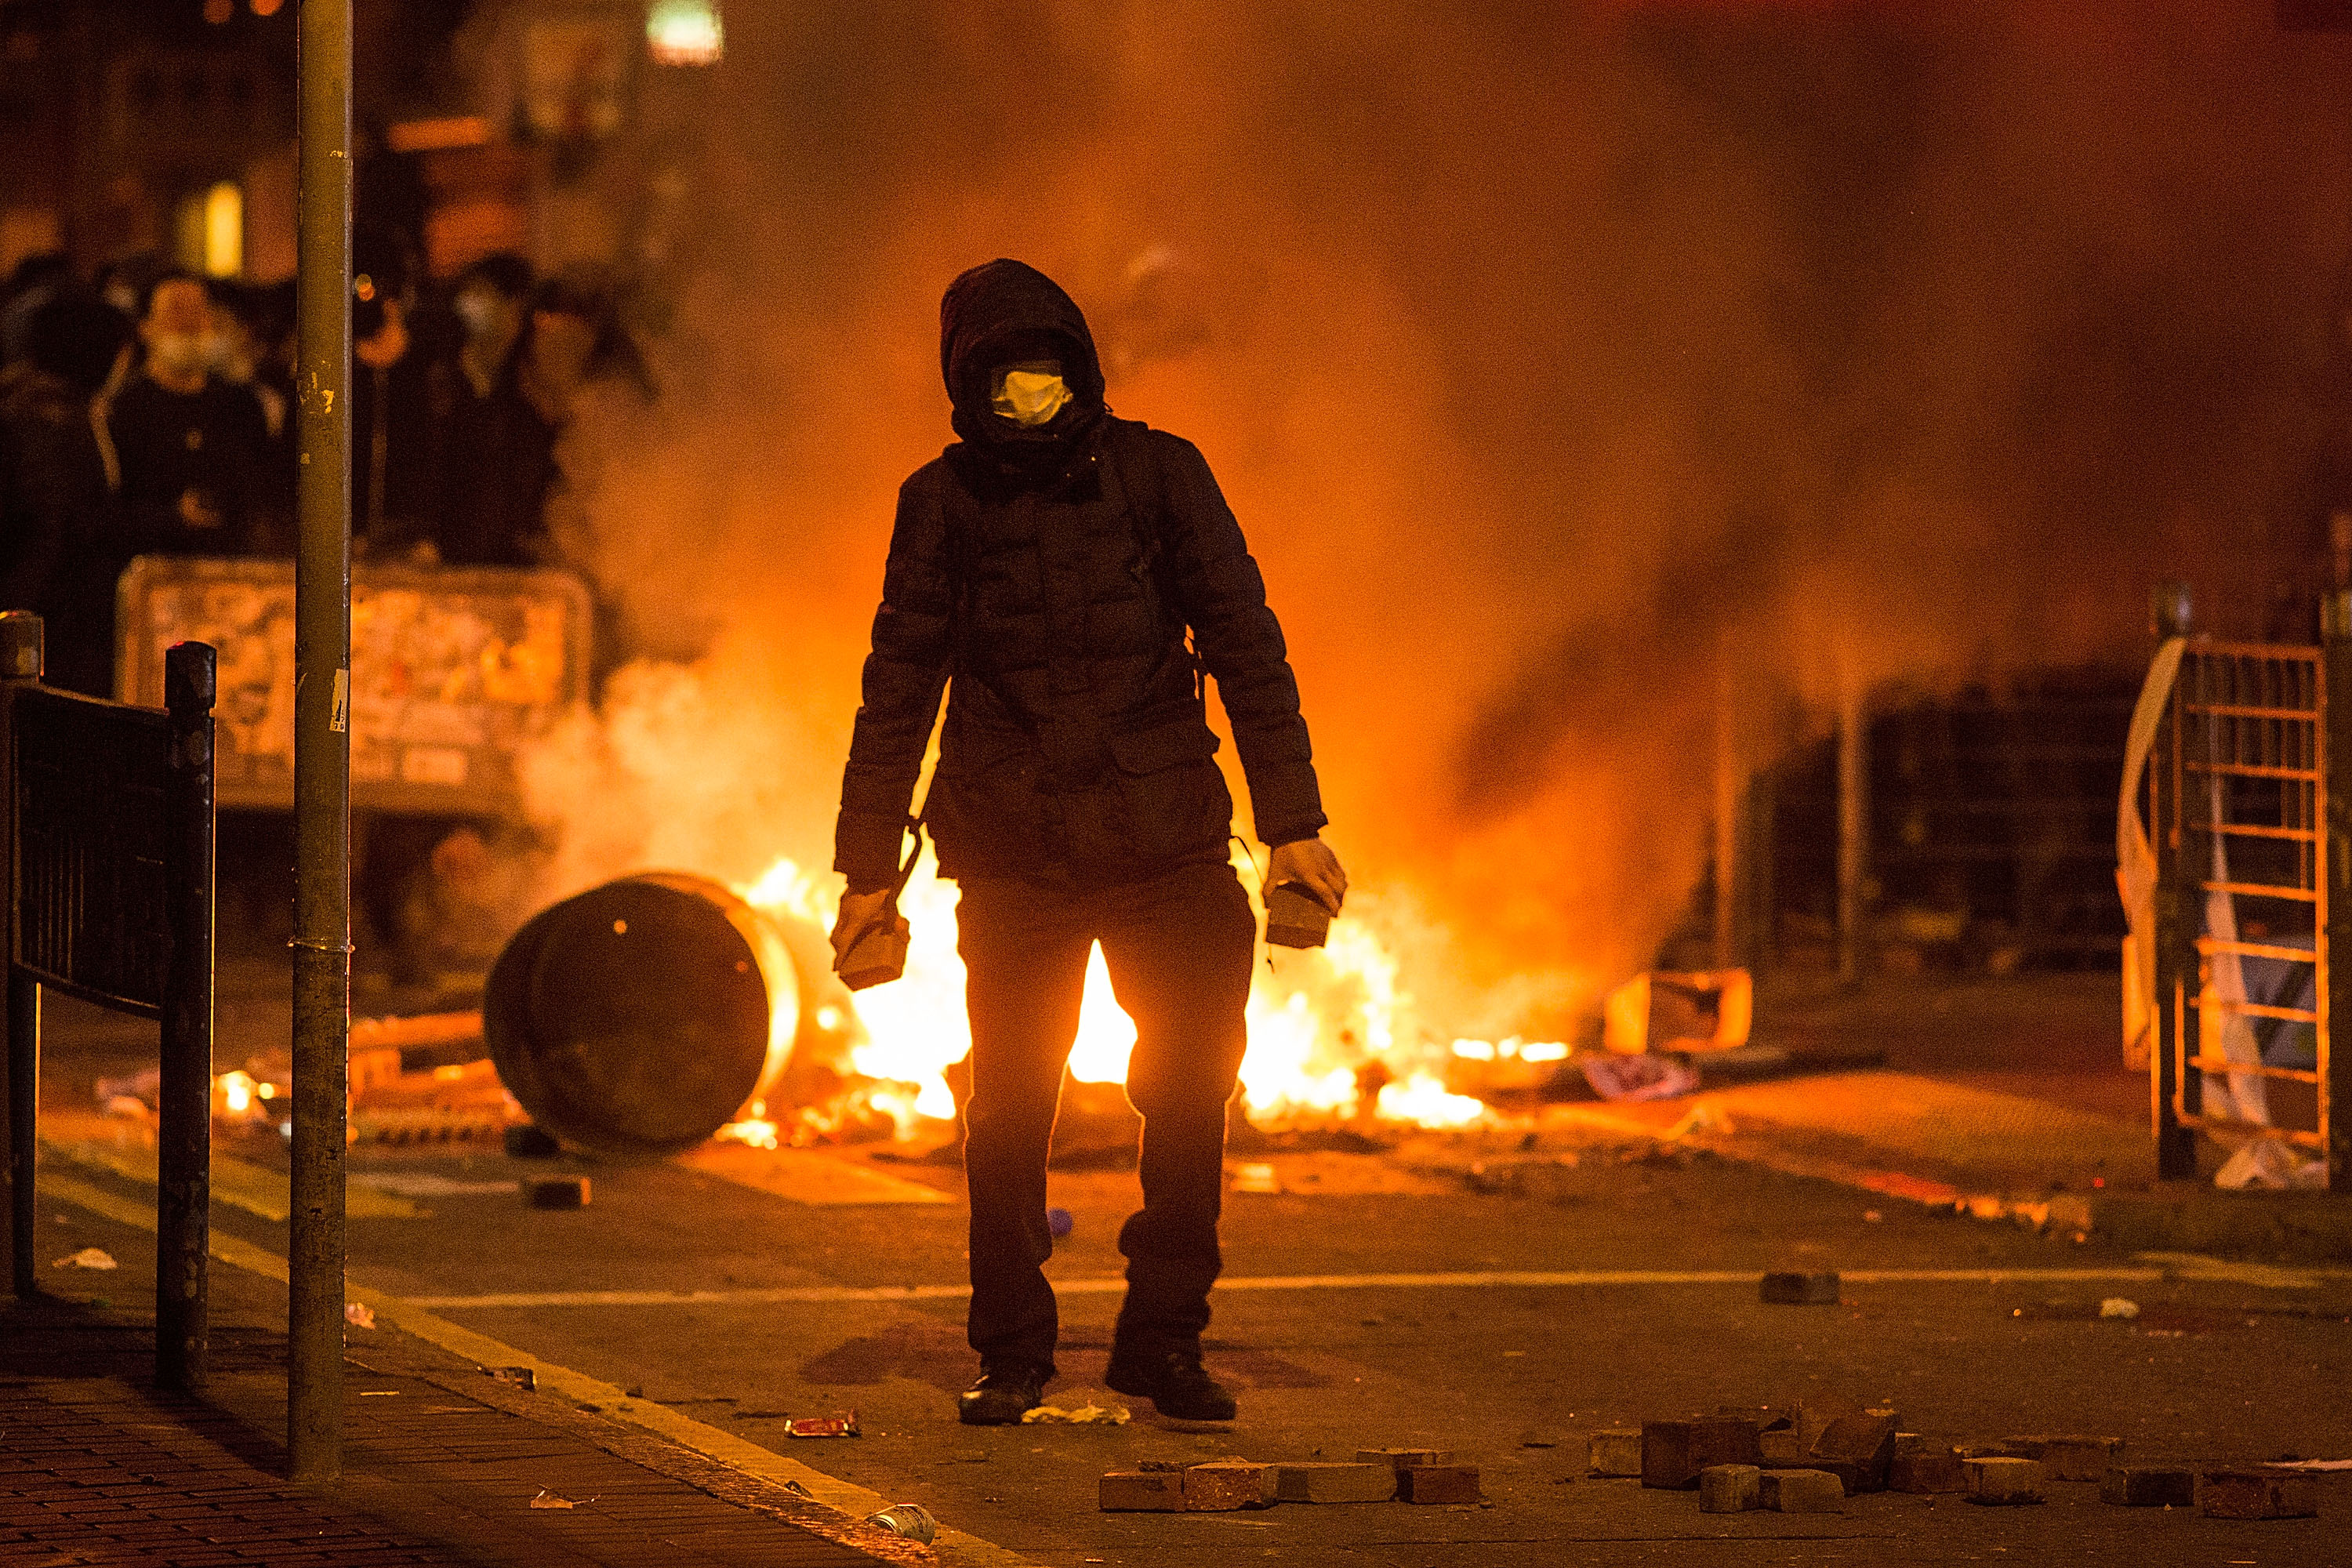 Rioters set fires in Mong Kok district of Hong Kong on Feb. 9, 2016